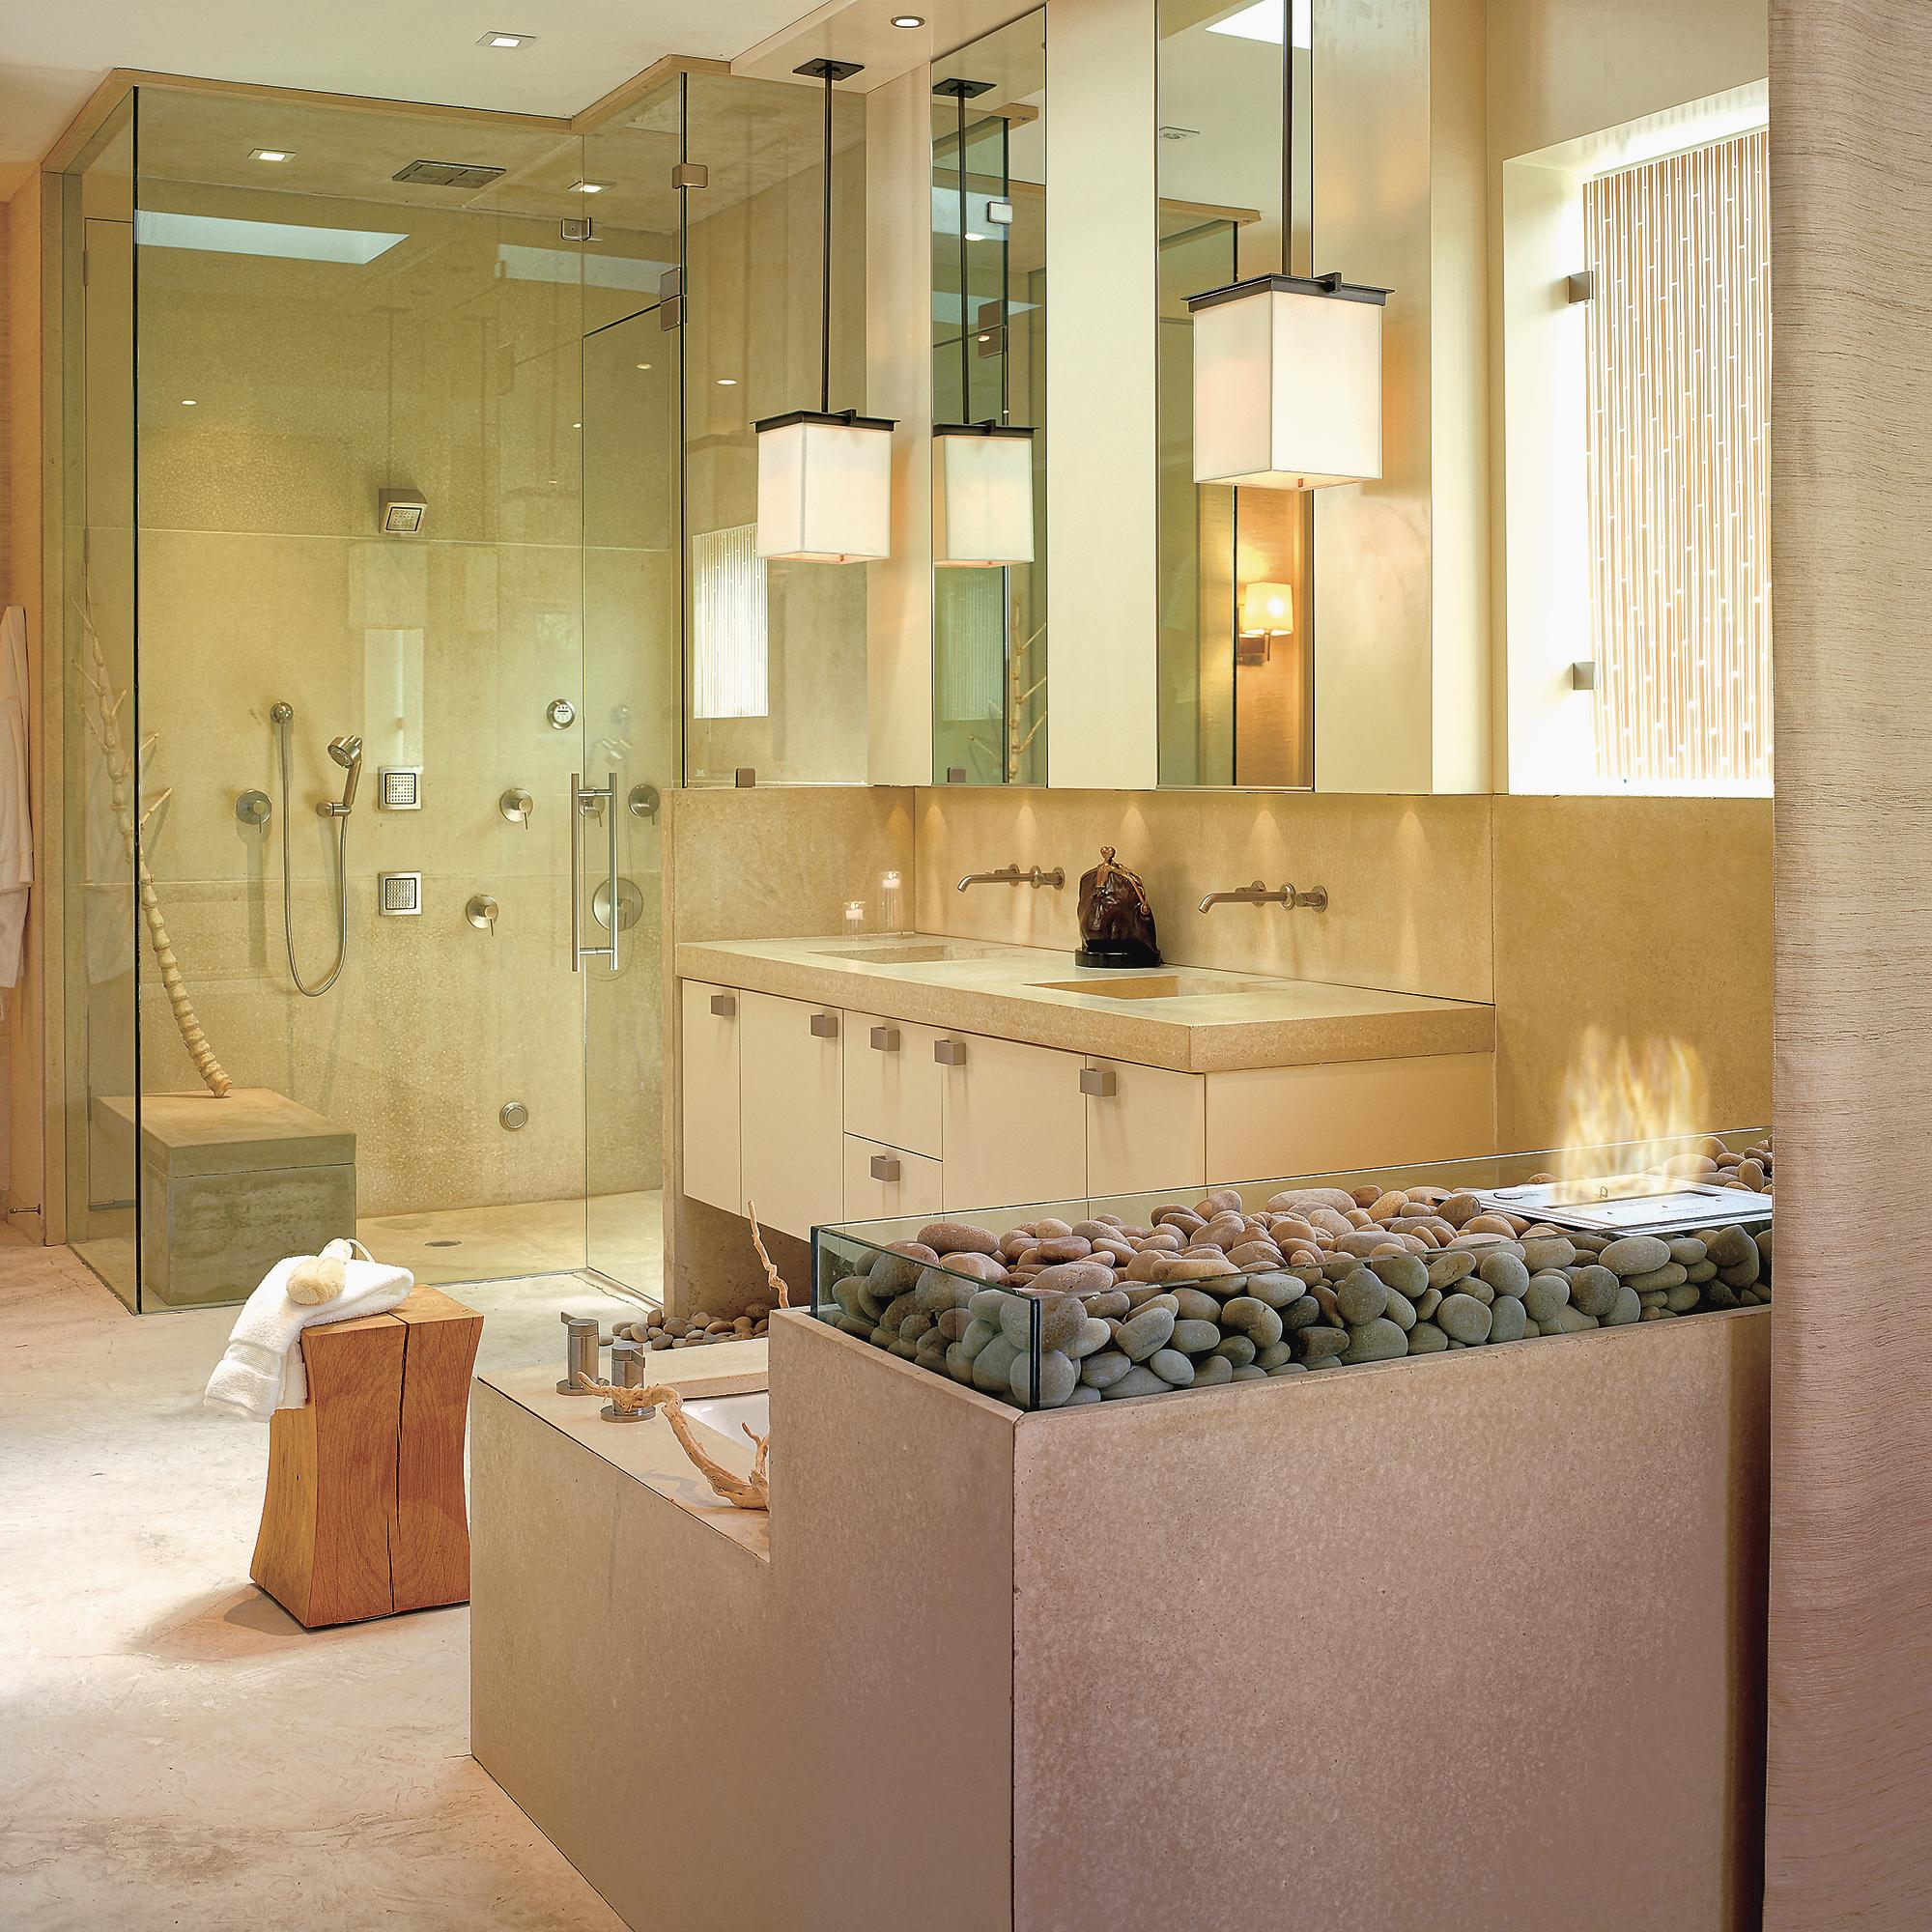 bathroom lighting layout pendant drop tips for incorporating pendant lights into a 10912 | tmp5768 2etmp tcm17 463735